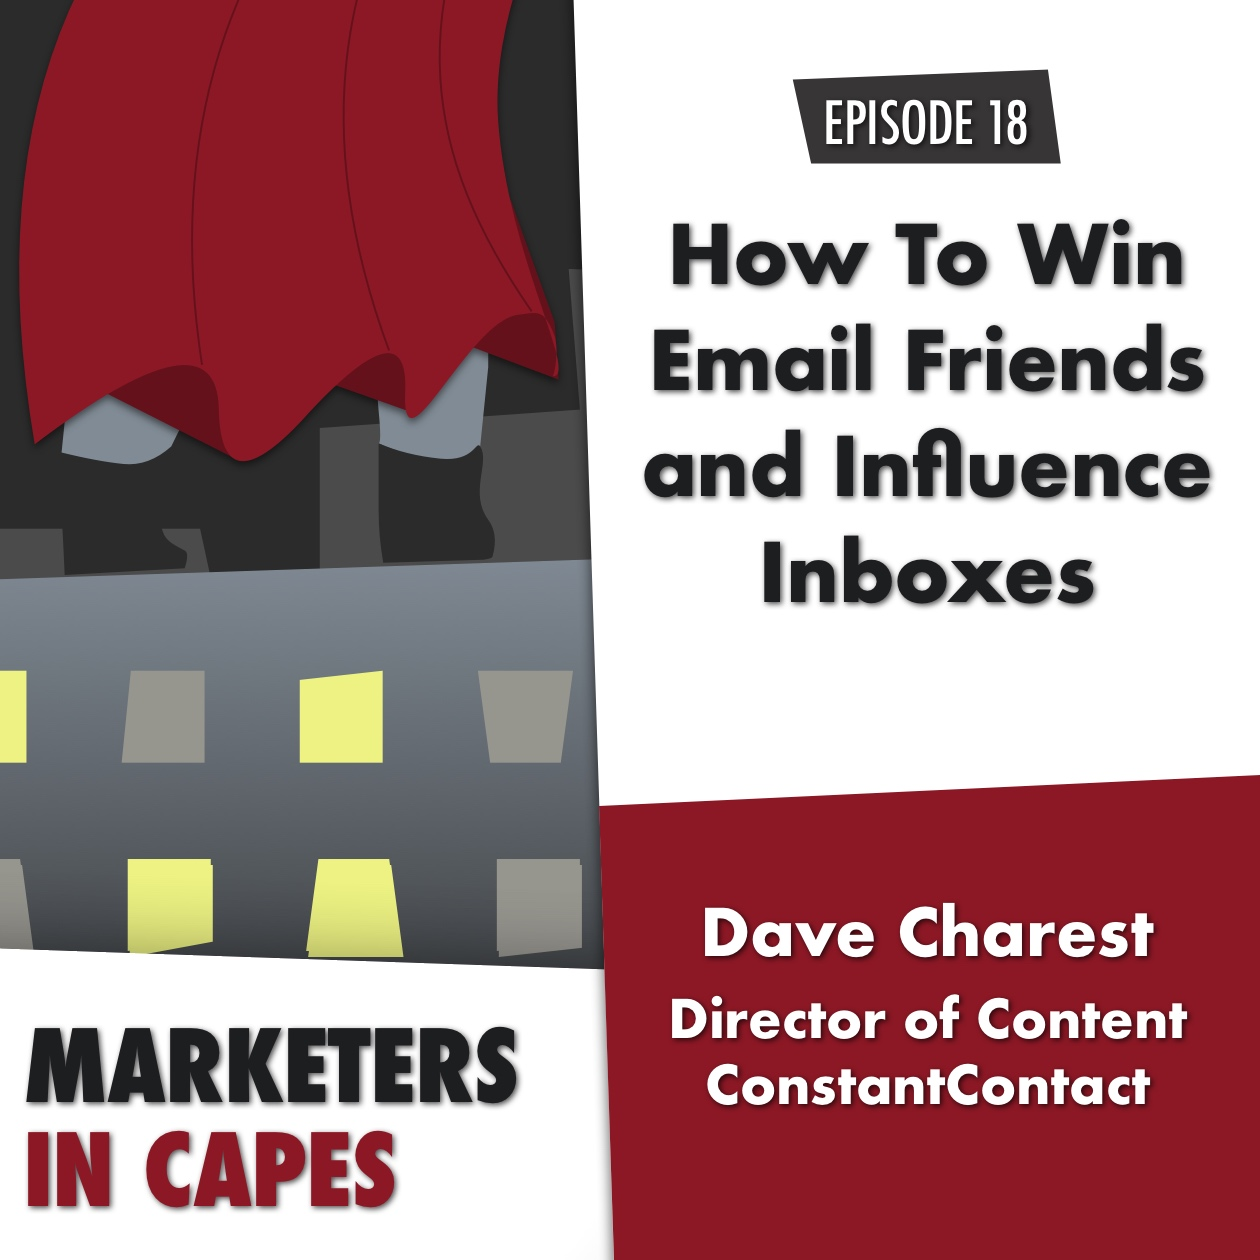 How To Win Email Friends and Influence Inboxes with Dave Charest from Constant Contact